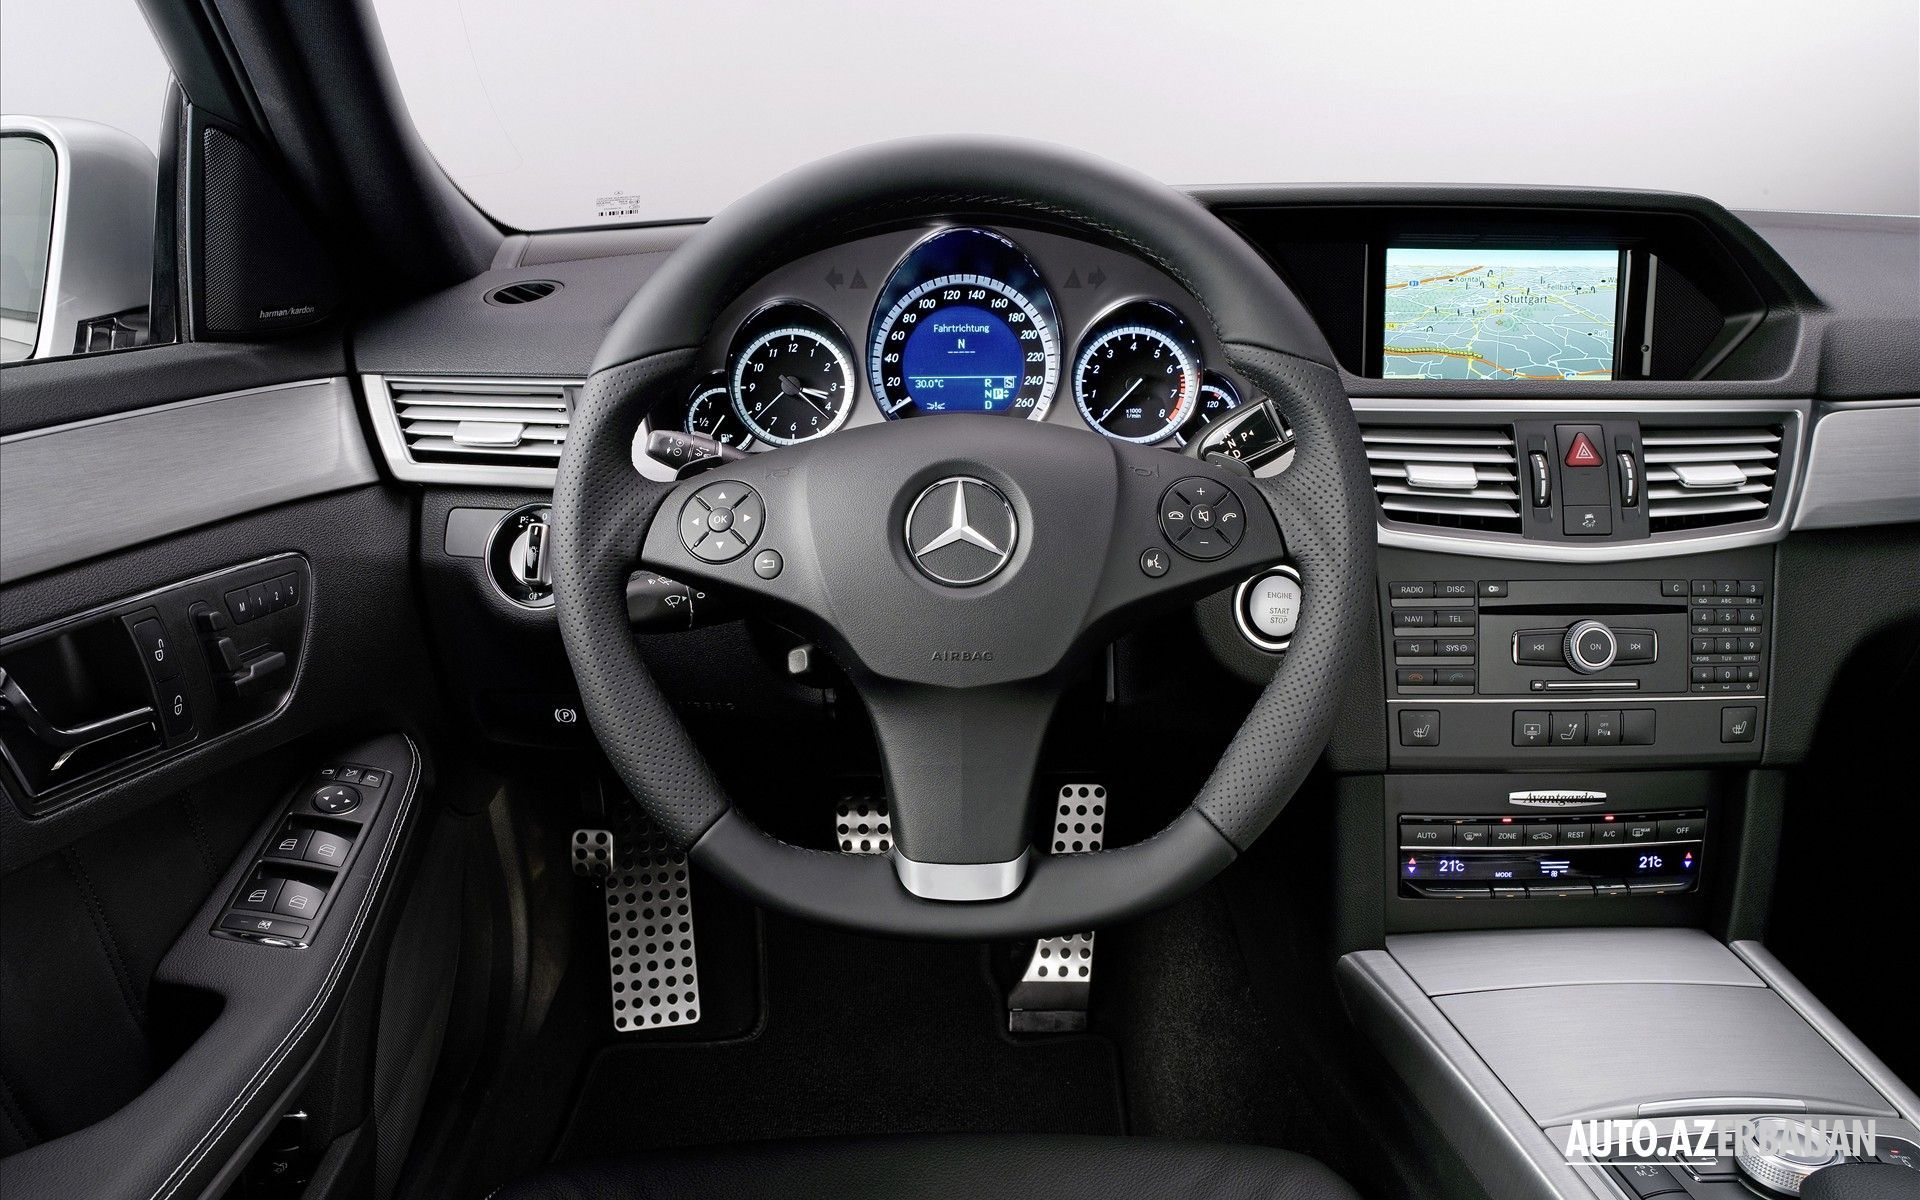 Interior of E class Mercedes Benz W212